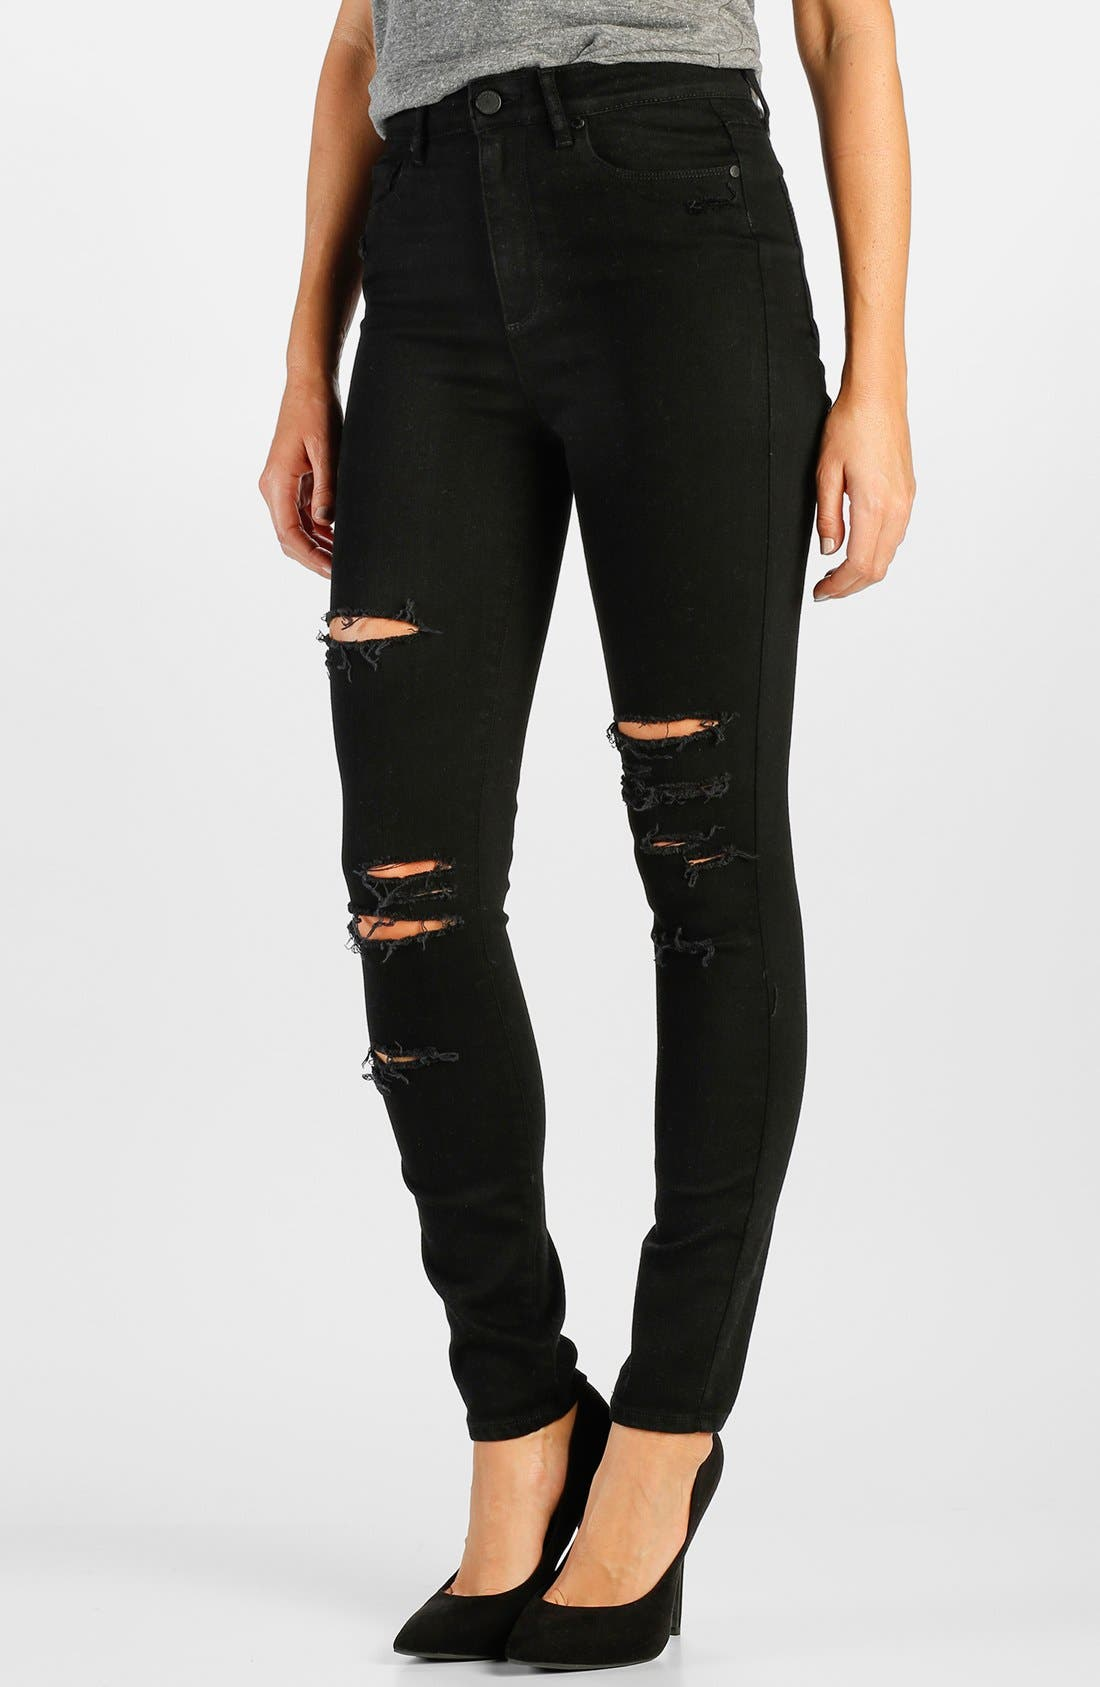 Alternate Image 1 Selected - Paige Denim 'Margot' High Rise Skinny Jeans (Black Arlo Destructed)